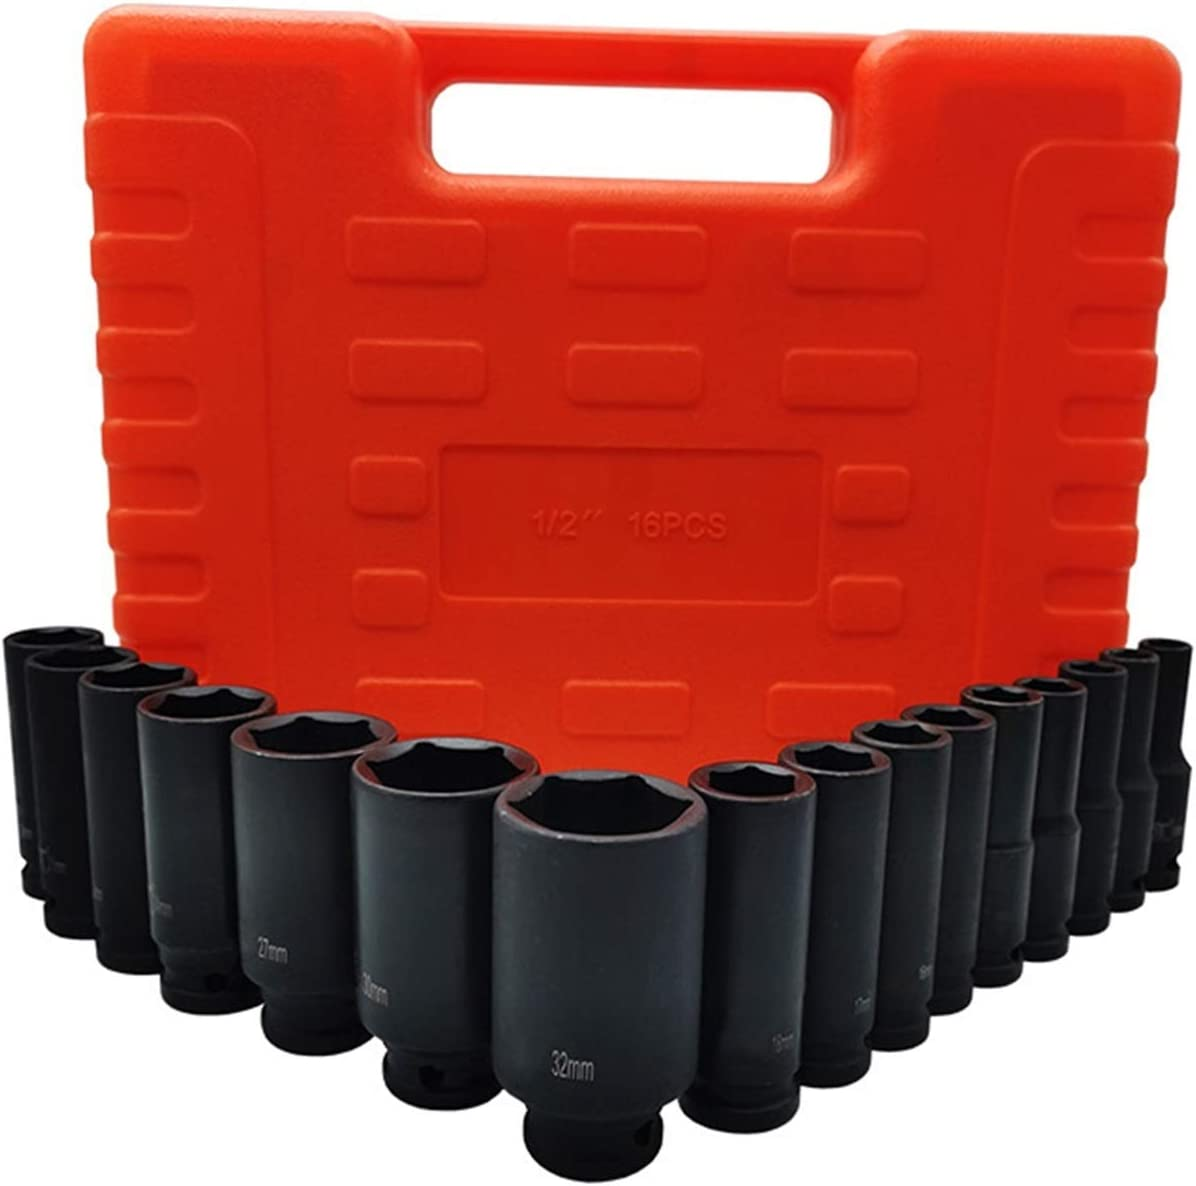 Color : 16PC Set Without Allen Wrench Set Allen Wrench Air Impact Sockets Set 1//2 Drive 6 Point Deep//Short Sockets Tool Sets